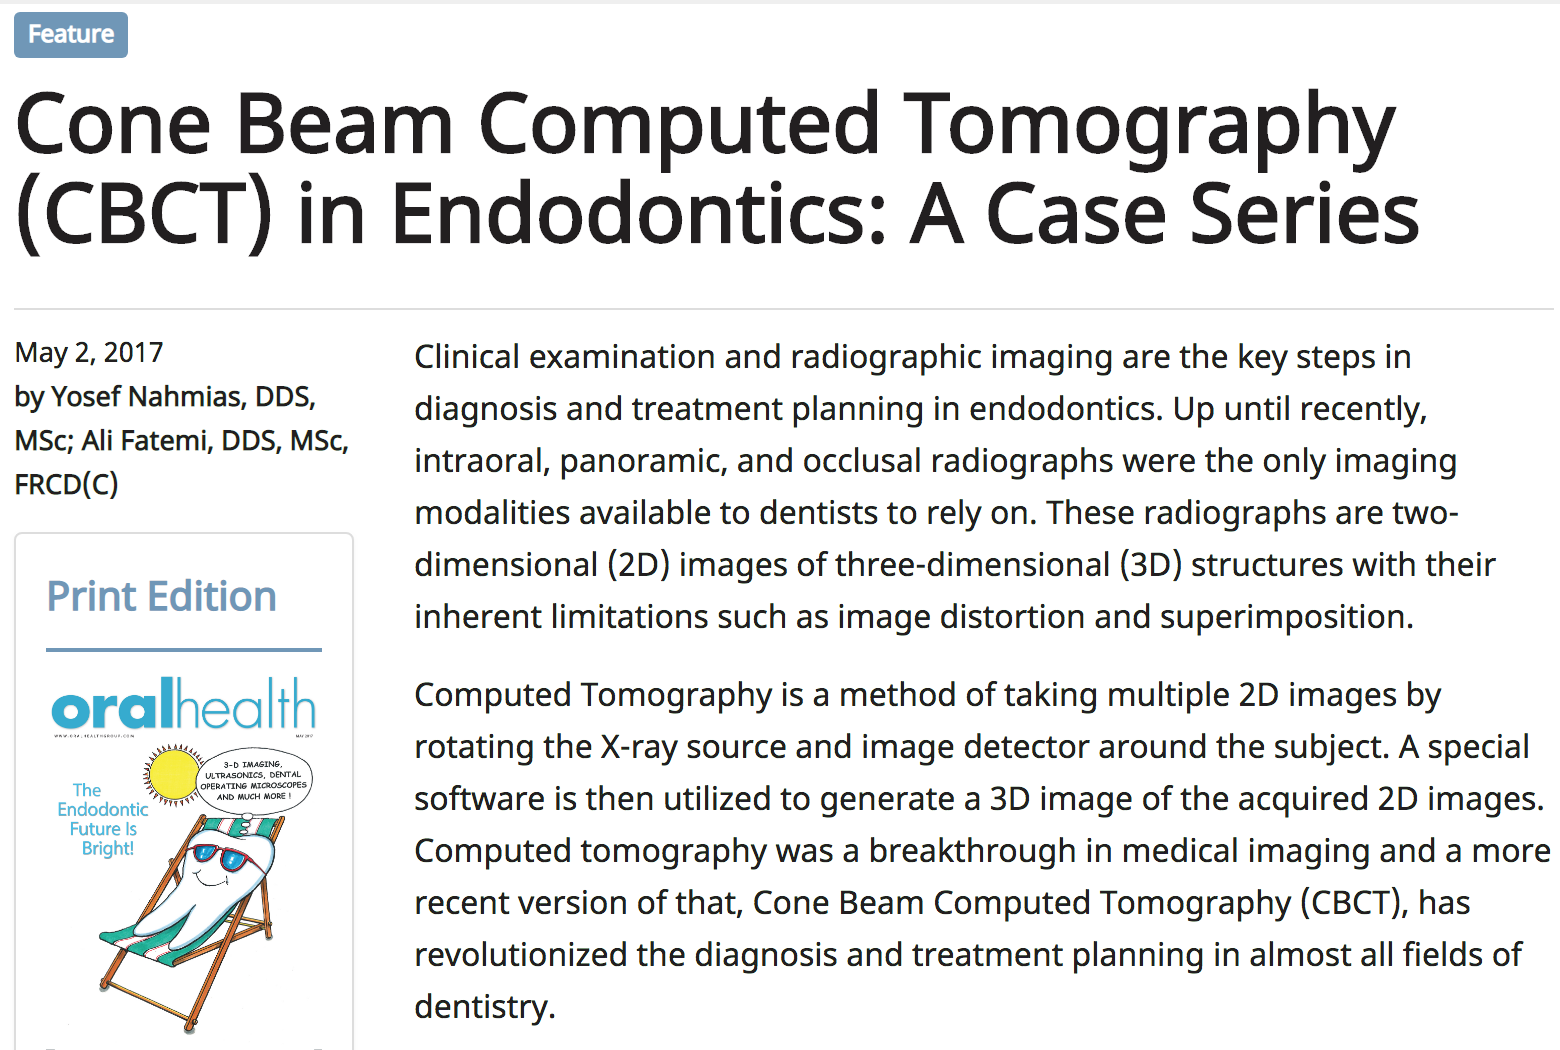 Dr. Ali Fatemi - Cone Beam Computed Tomography (CBCT) in Endodontics: A Case Series